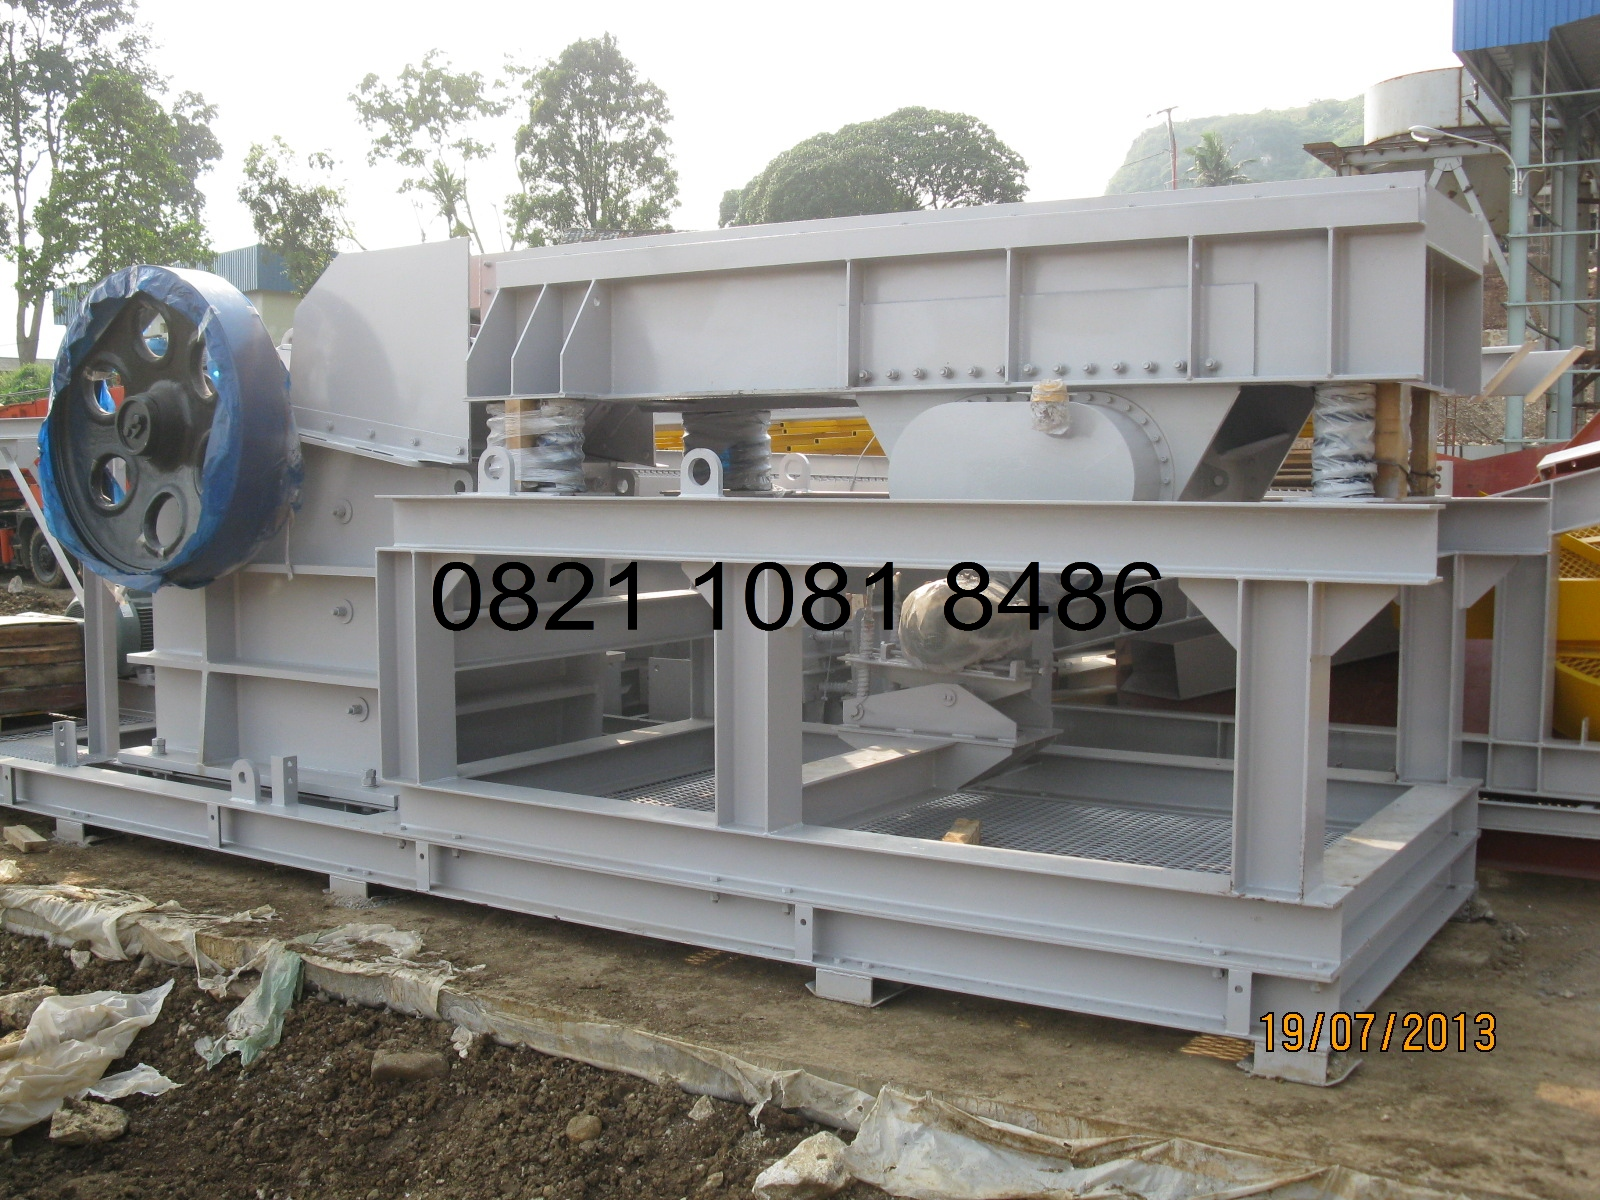 Experience Project Limestone Crusher Plant Jual Stone Pembersih Komponen Elektronik Contac Cleaner Klbest Produk Grizzly Feeder